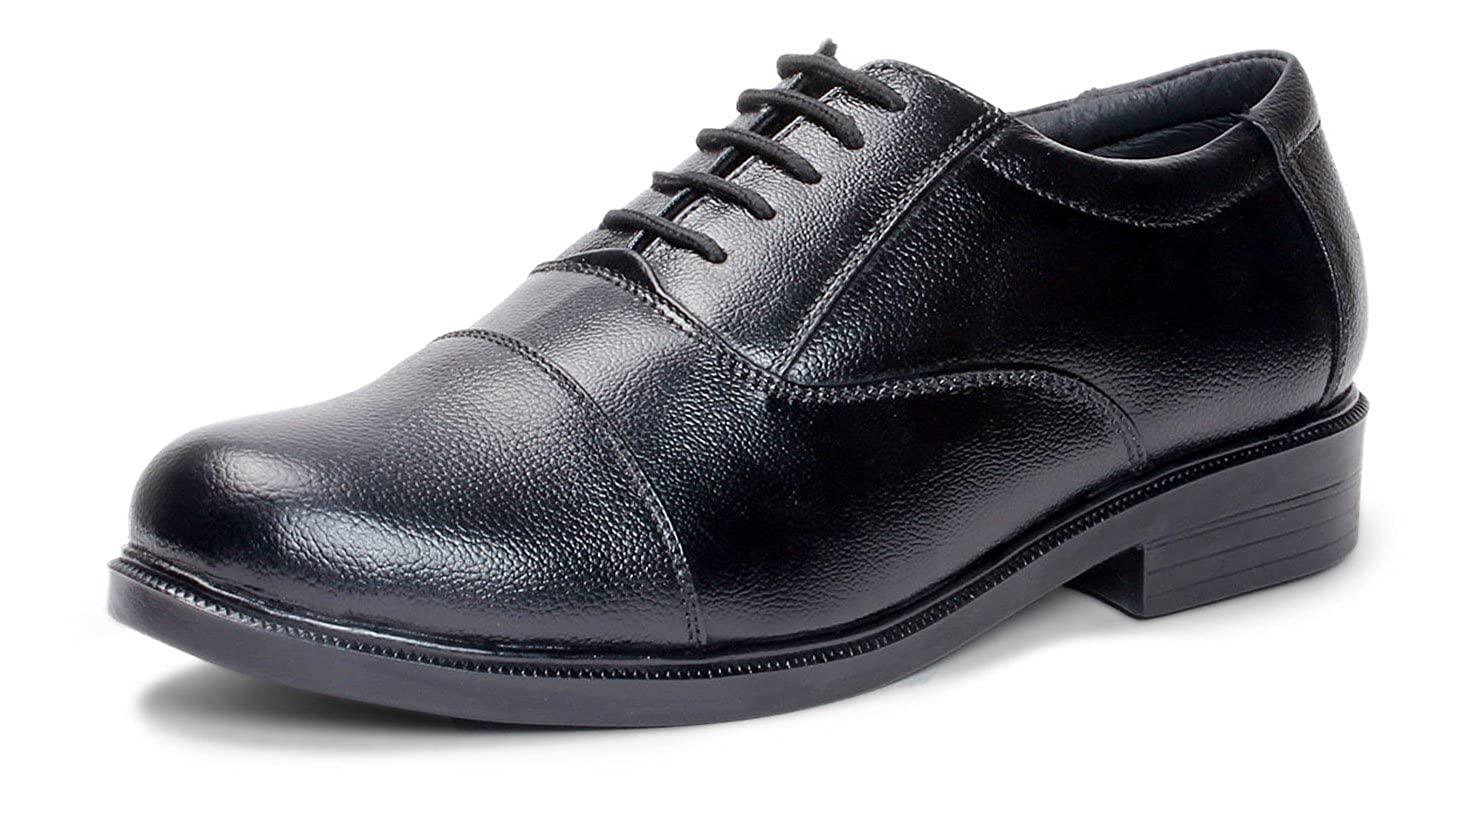 7cc7625918e Bacca Bucci Men s Leather Shoes - Black  Buy Online at Low Prices in India  - Amazon.in